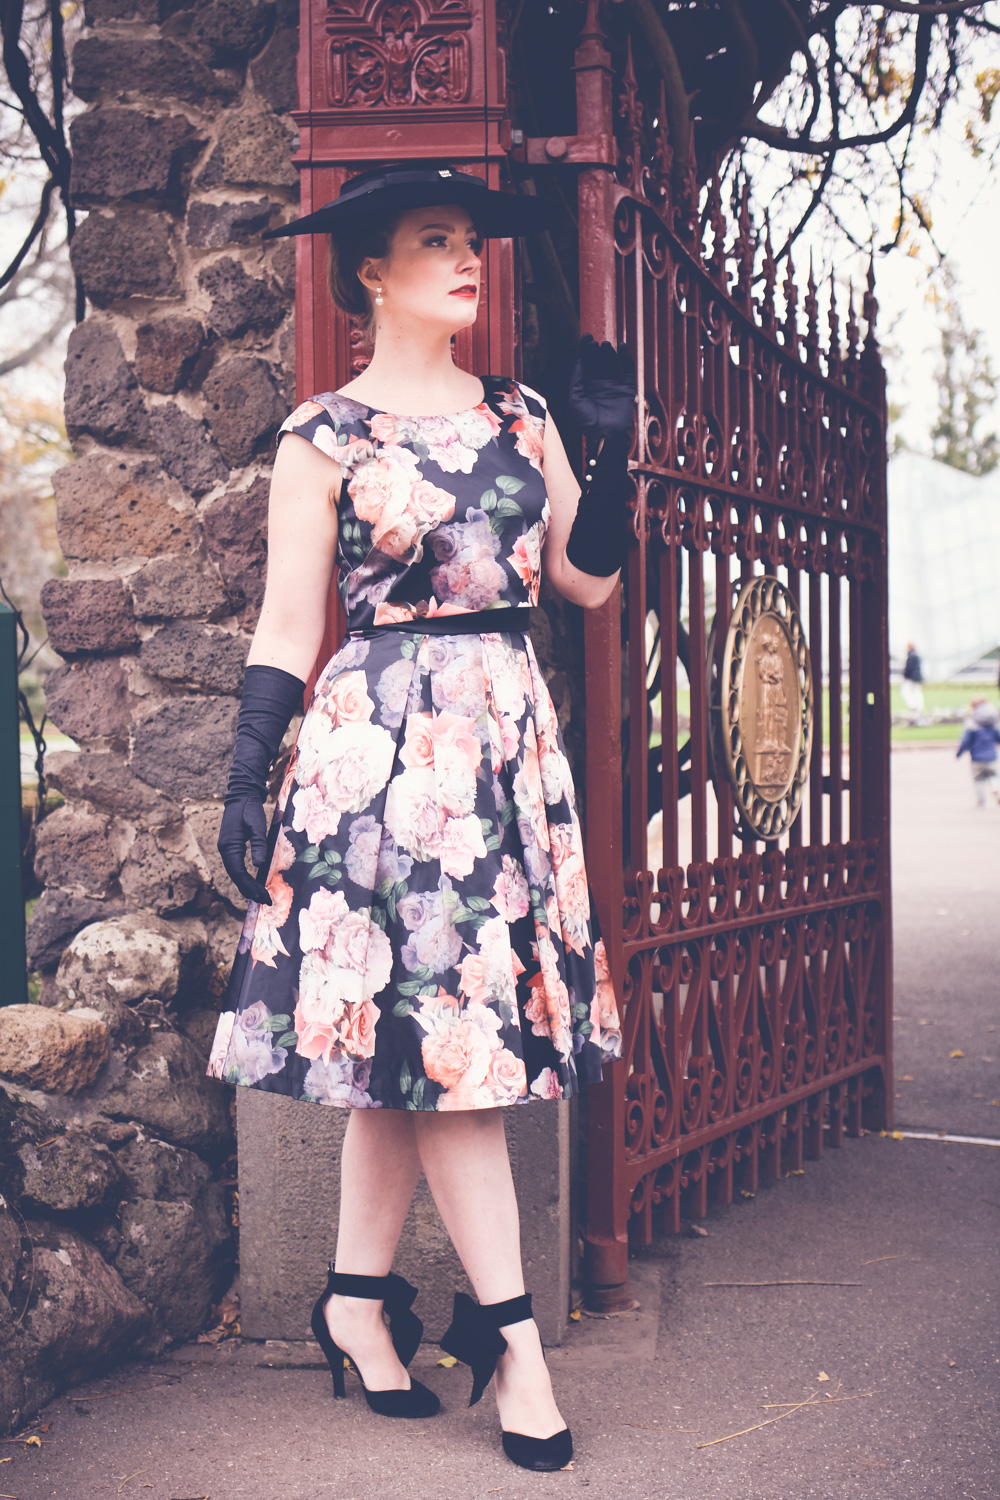 @findingfemme wears Review Australia winter floral dress at Ballarat Botanic Gardens